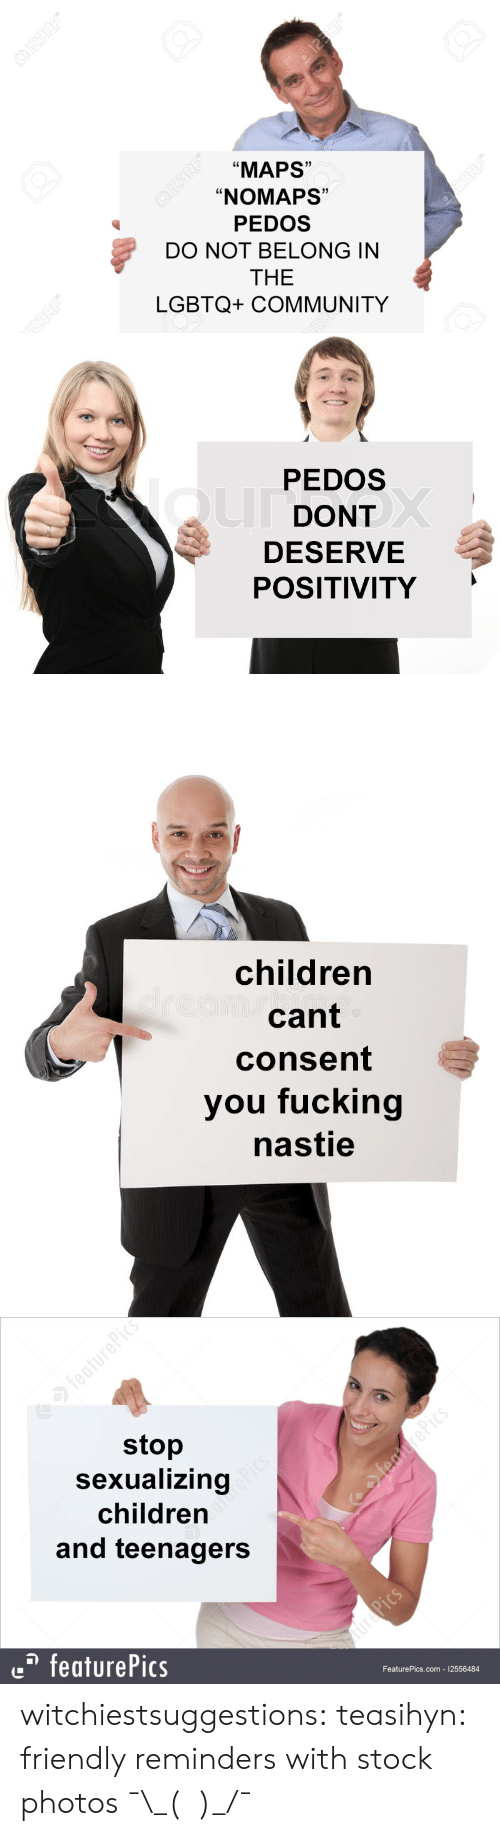 """Stock Photos: """"MAPS""""  """"NOMAPS""""  PEDOS  DO NOT BELONG IN  THE  LGBTQ+ COMMUNITY  Ld  1)  C0  1   PEDOS  DONT  DESERVE  POSITIVITY   children  cant  consent  you fucking  nastie   stop  Sexualizing  children  and teenagers  featurePics  FeaturePics.com 12556484 witchiestsuggestions: teasihyn: friendly reminders with stock photos  ¯\_(ツ)_/¯"""